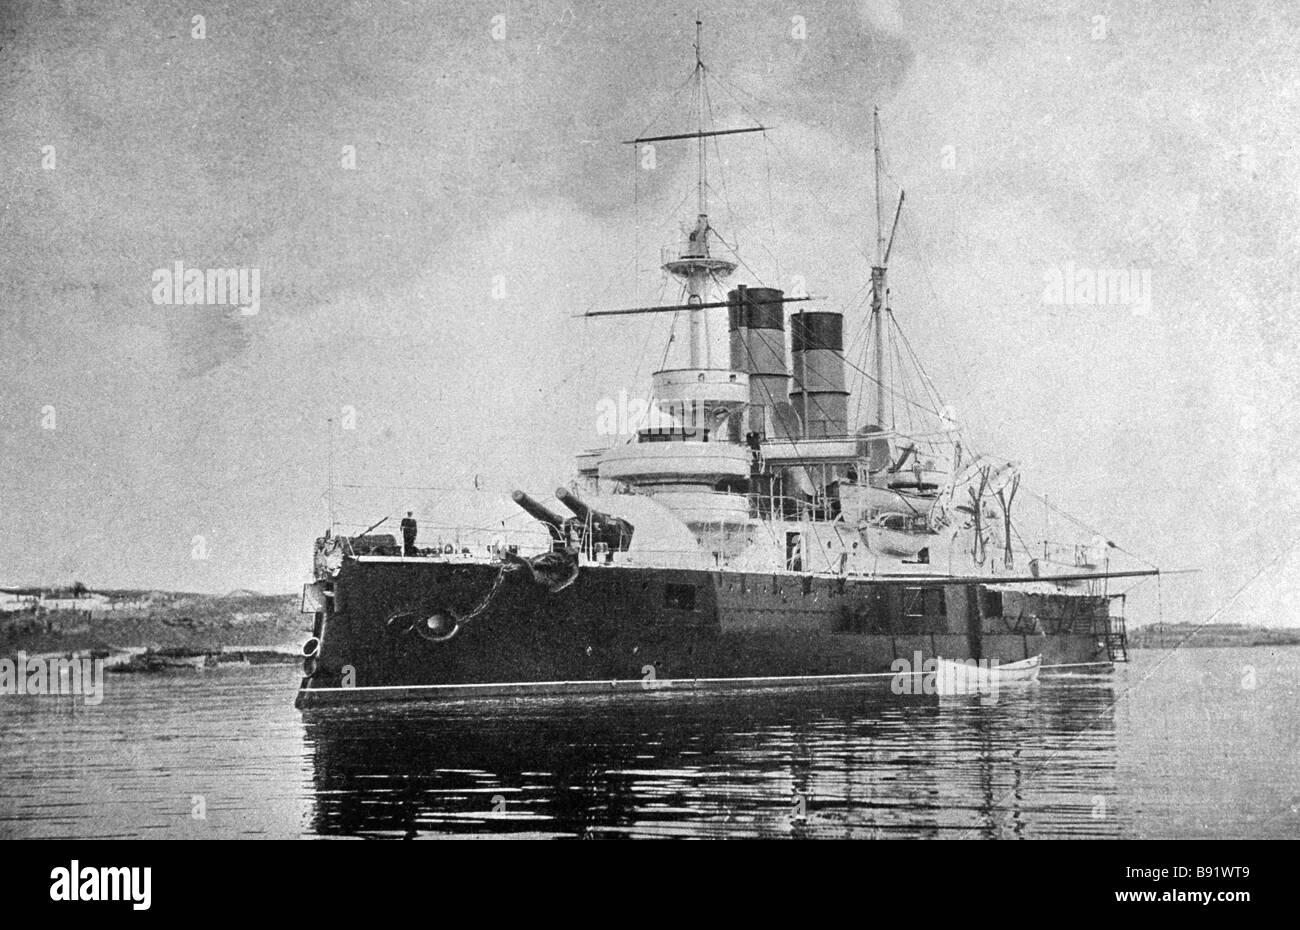 Battleship Twelve Apostles from the collection of the History Museum - Stock Image